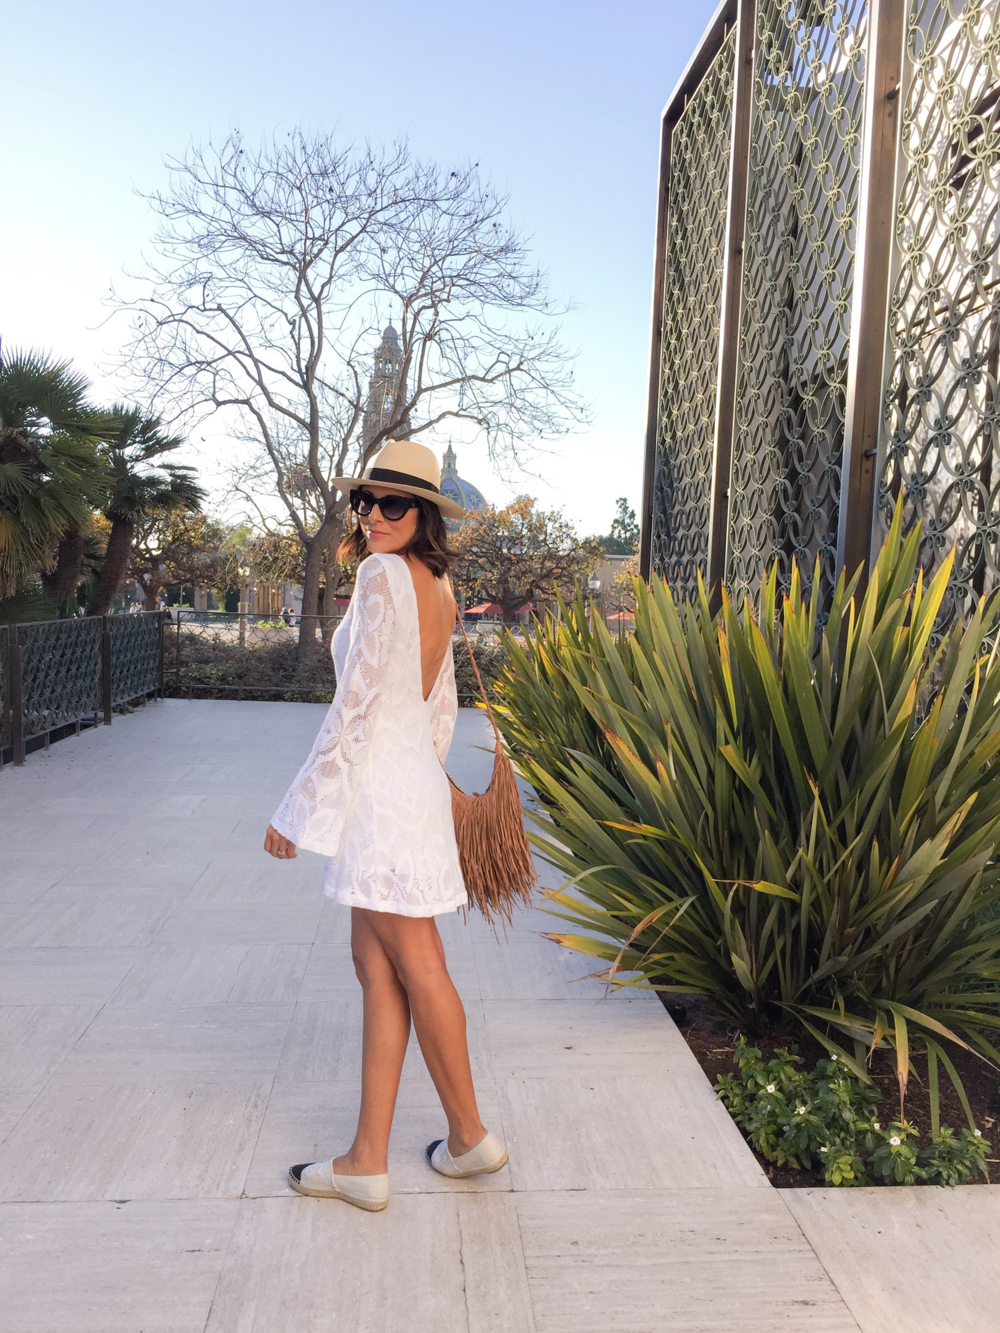 Nightcap clothing, Chanel espadrilles, fringe handbag, white dress, festival vibe,